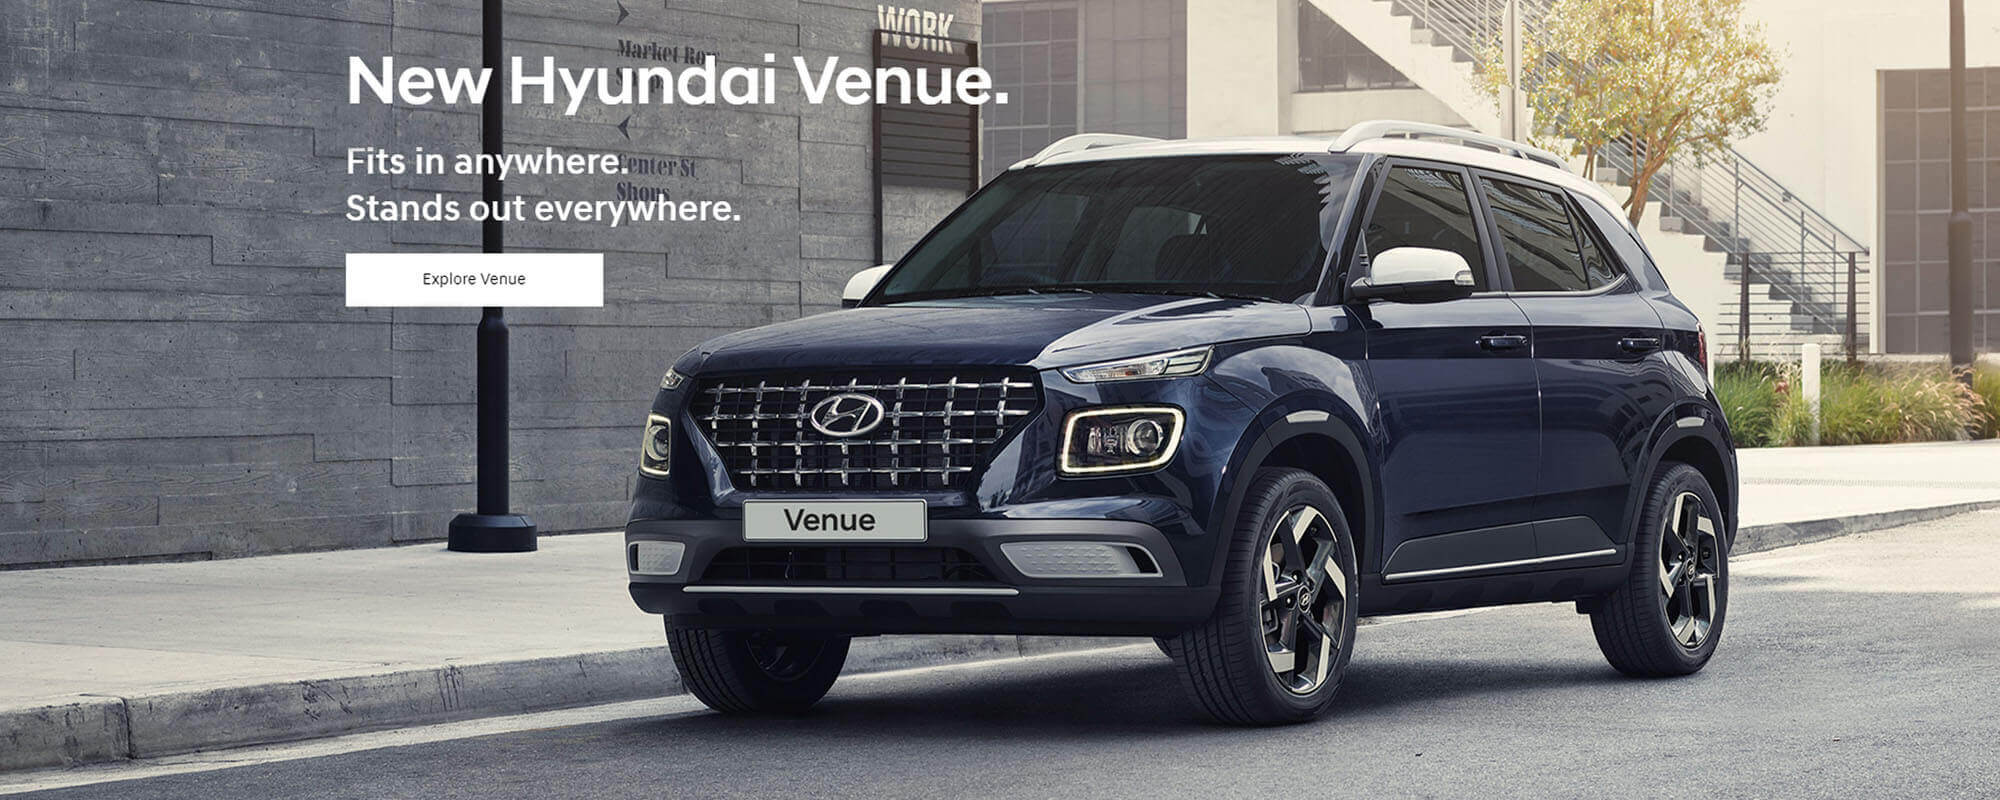 New Hyundai Venue. Fits in anywhere. Stands out everywhere.